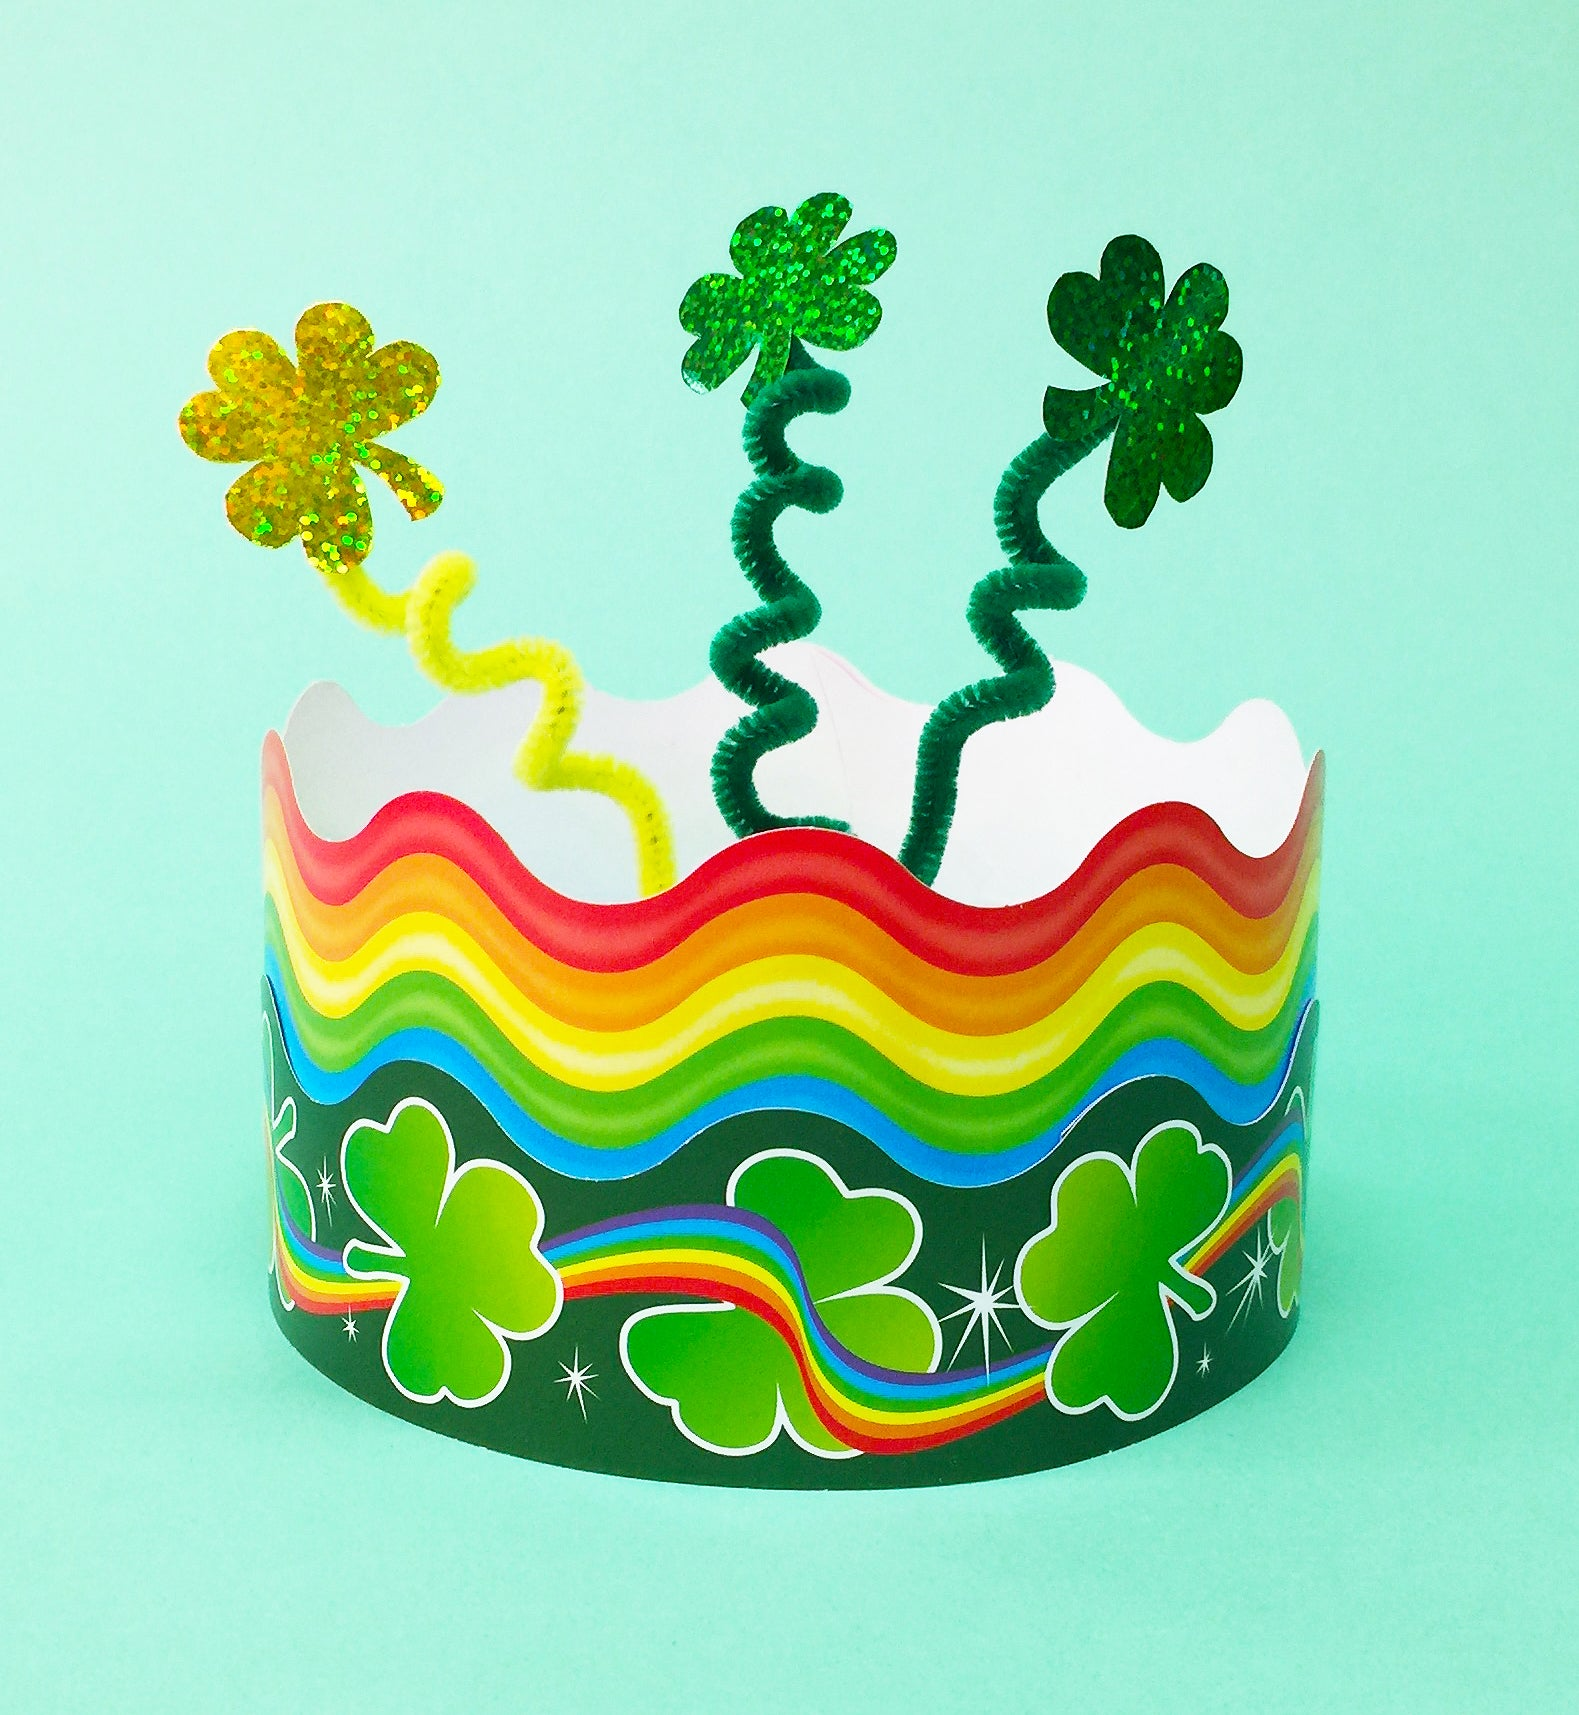 fun easy kid project for st. patrick's day DIY paper crown